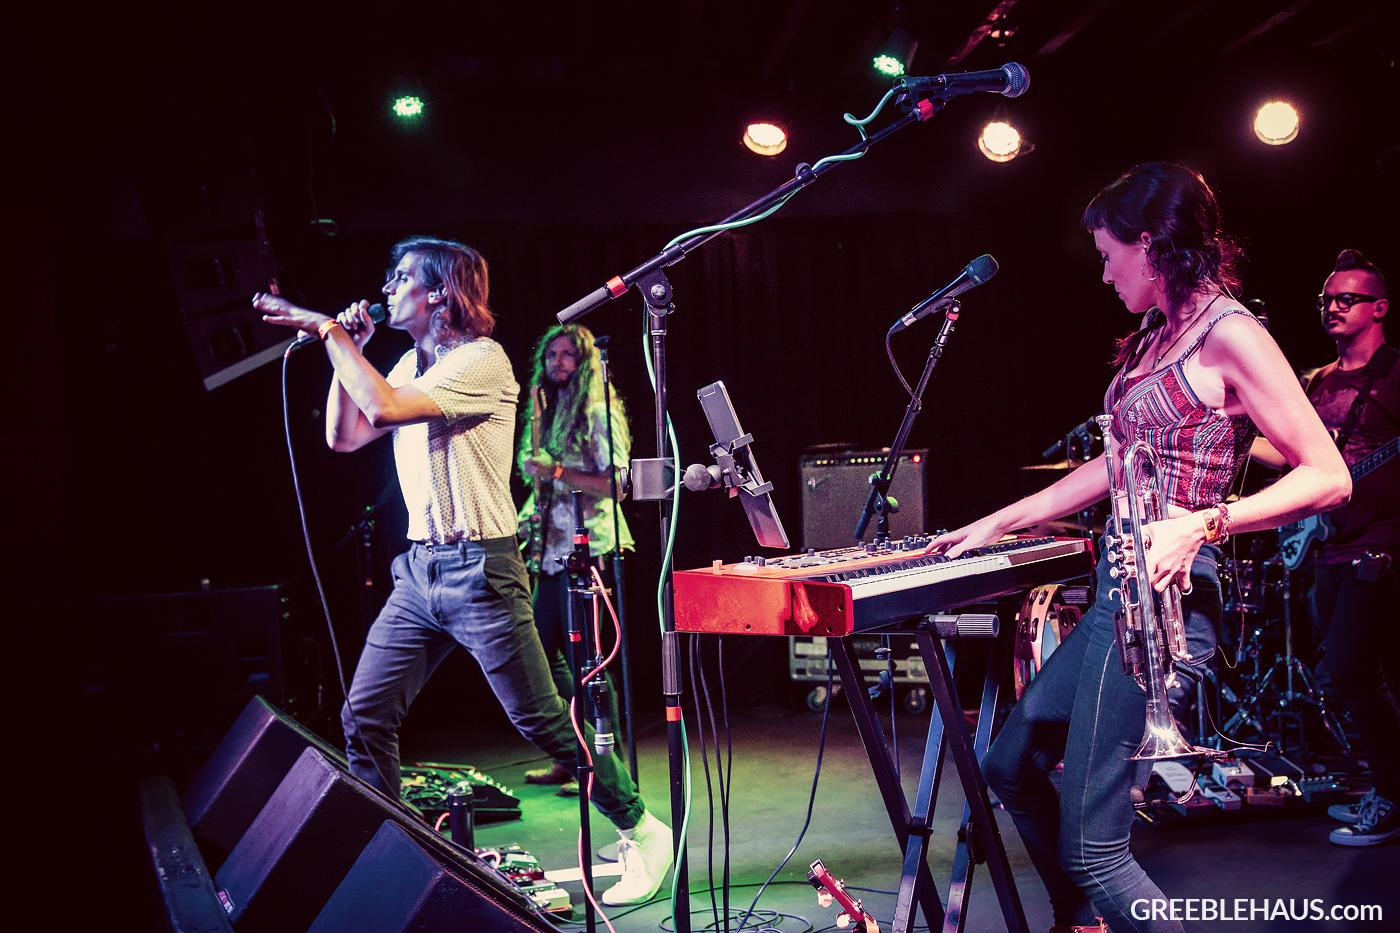 Concert photos of Outer Vibe from Denver's Marquis Theatre